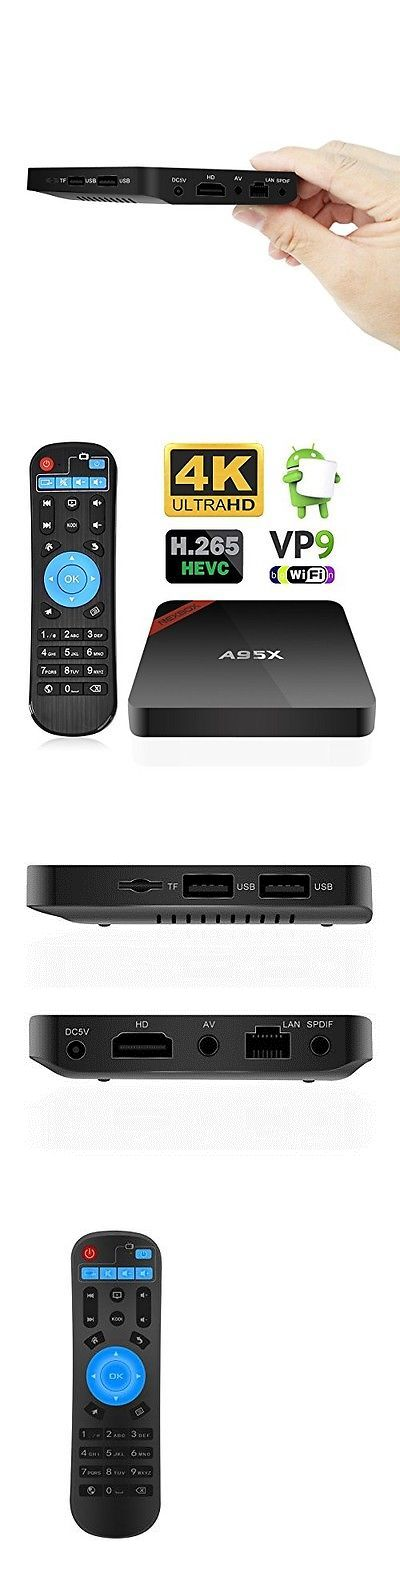 Internet and Media Streamers: Android 6.0 Tv Box Quad Core Kodi 17.1 4K 18+ Movies Sport Wifi Spdif Ir Remote -> BUY IT NOW ONLY: $59.59 on eBay!